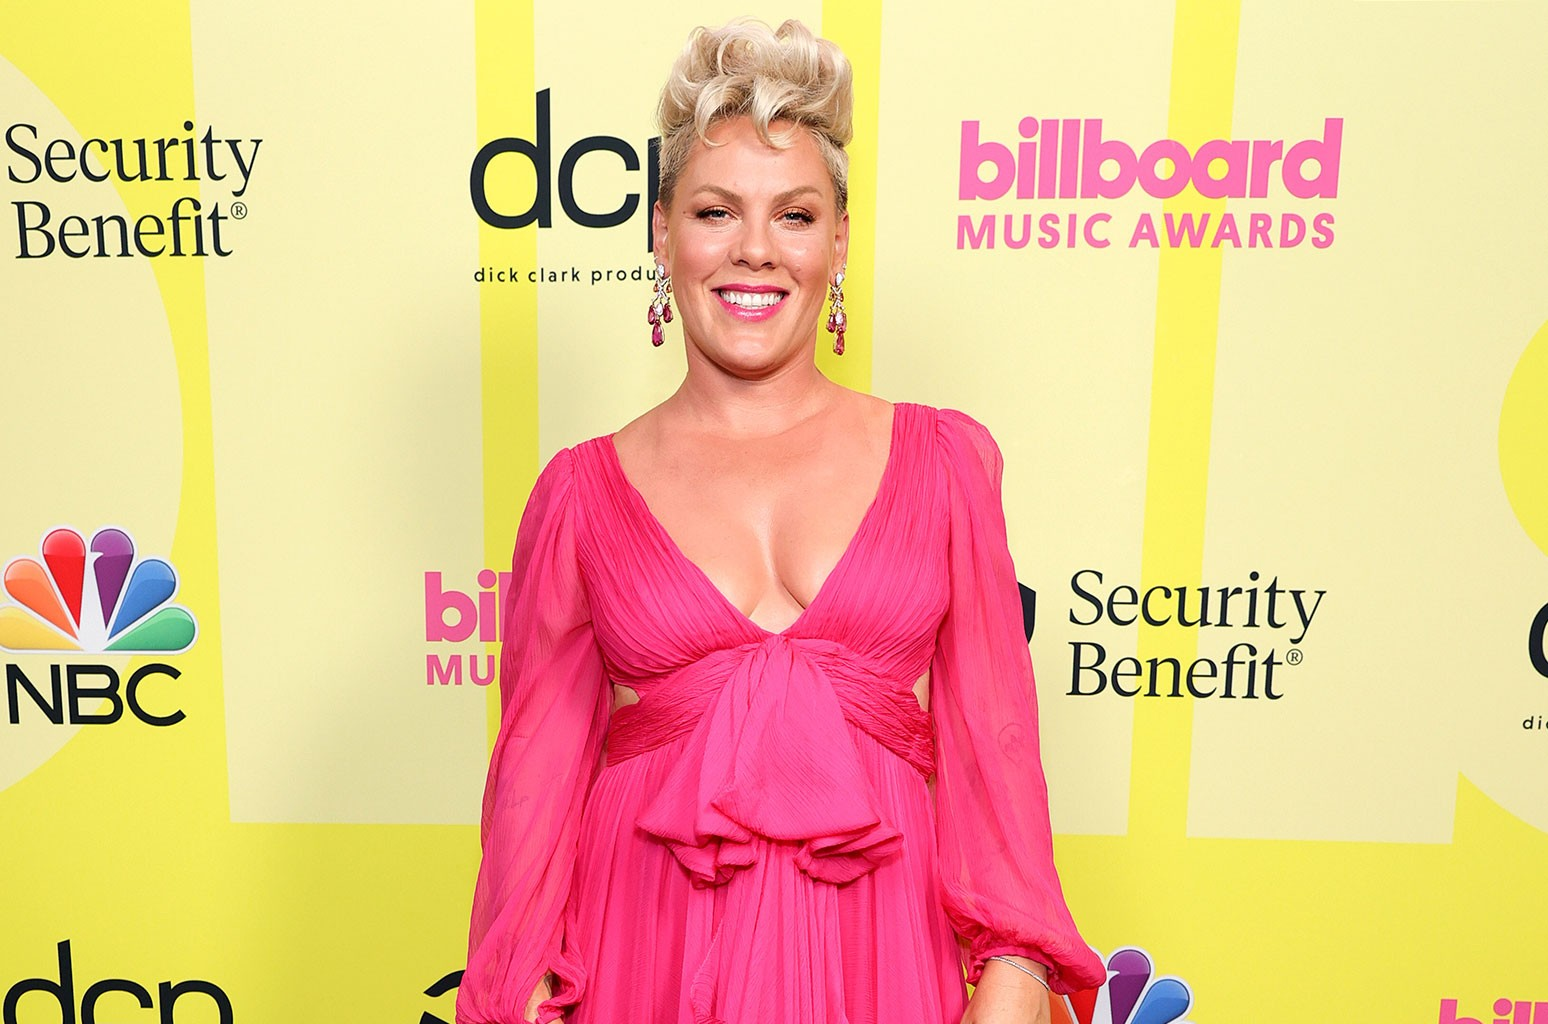 P!nk Praises Tennis Star Naomi Osaka For Putting Her Mental Health and Well-Being 'Above Everything'